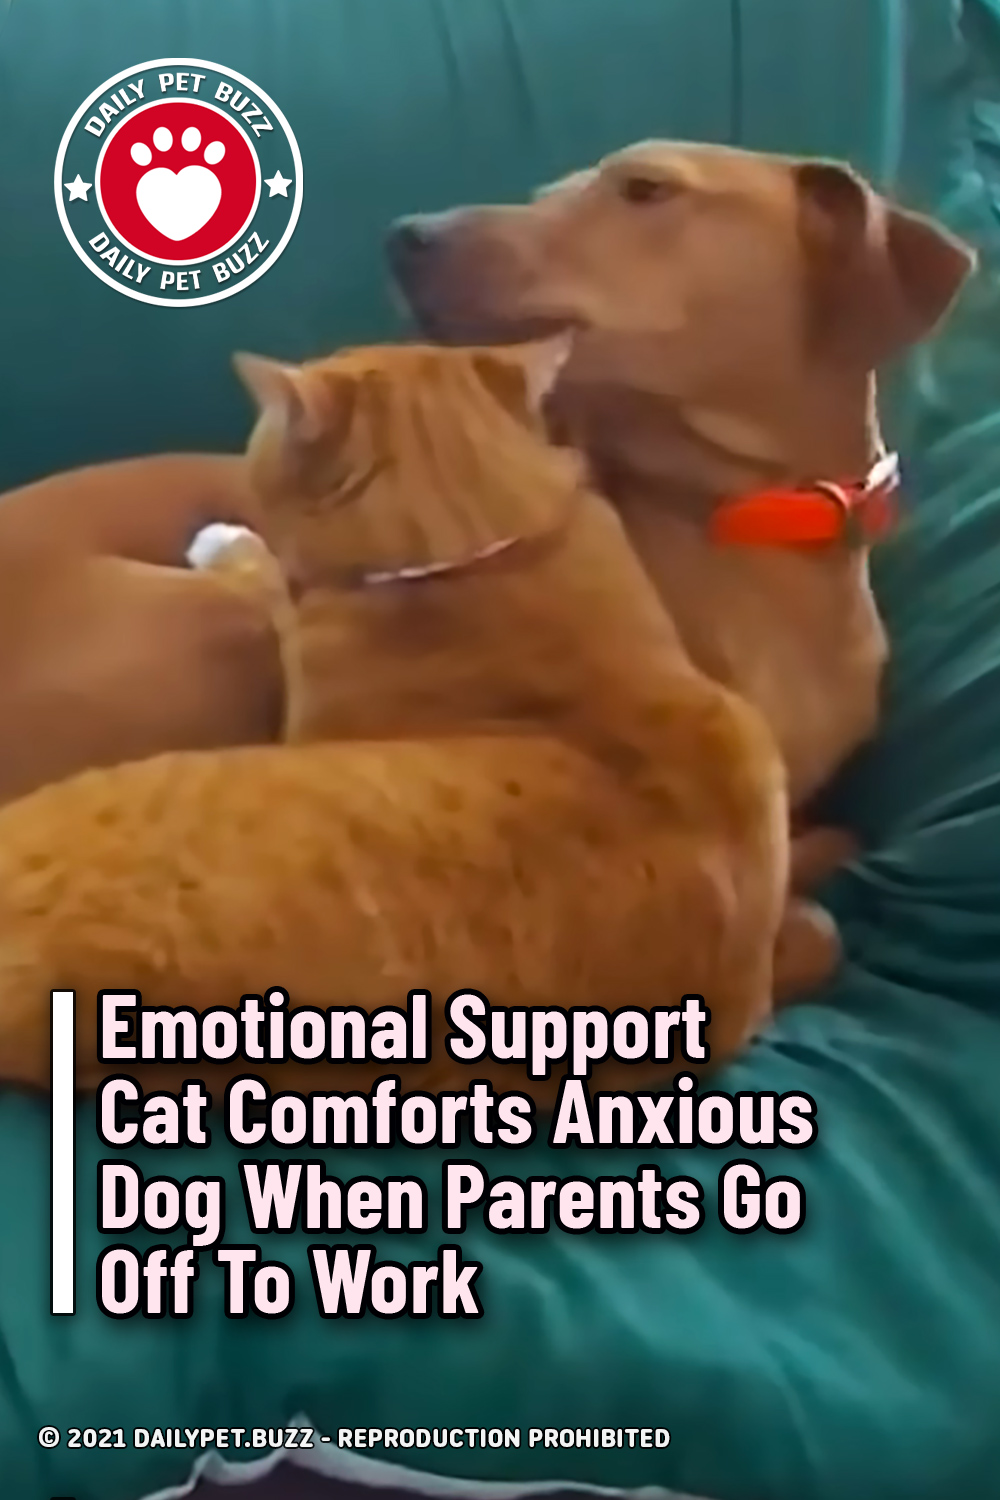 Emotional Support Cat Comforts Anxious Dog When Parents Go Off To Work